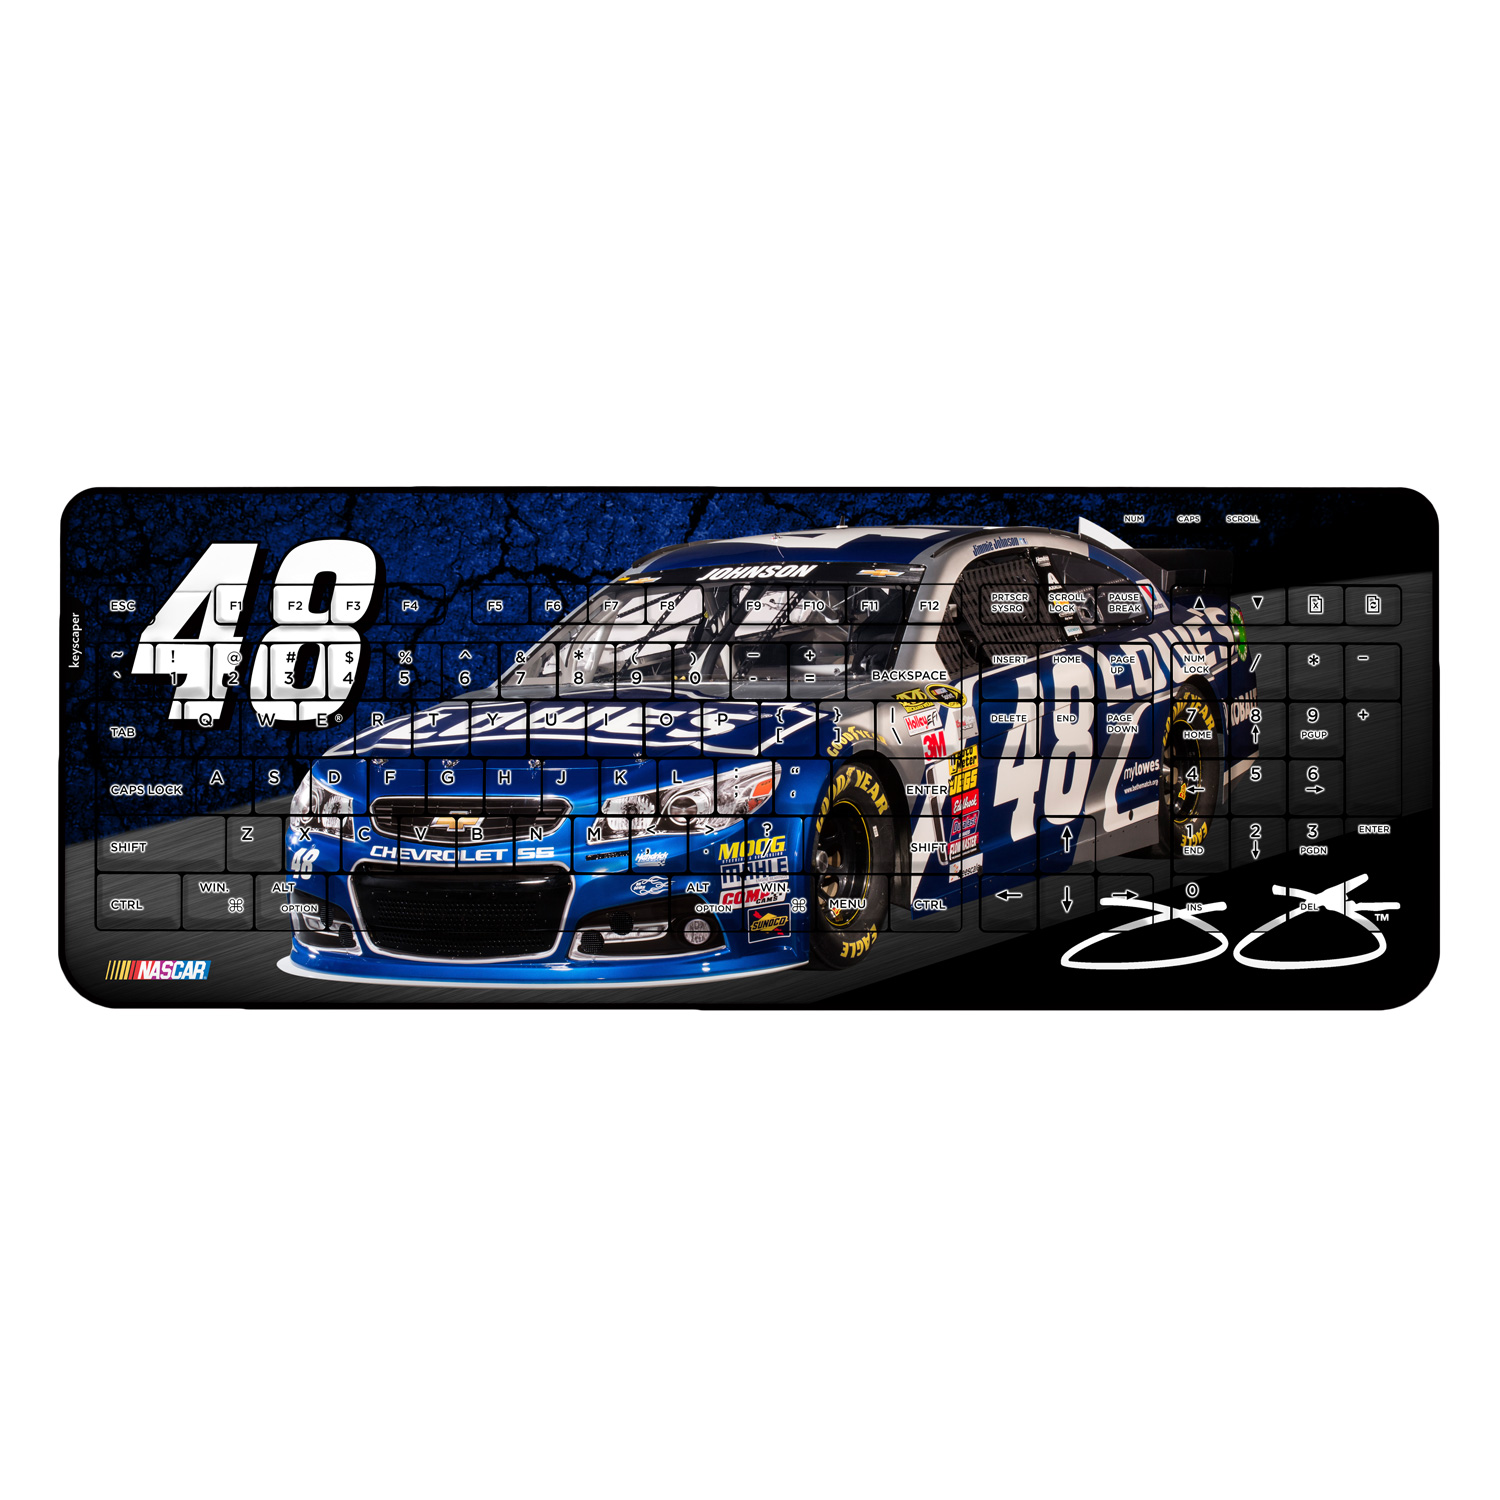 Jimmie Johnson Wireless USB Keyboard NASCAR